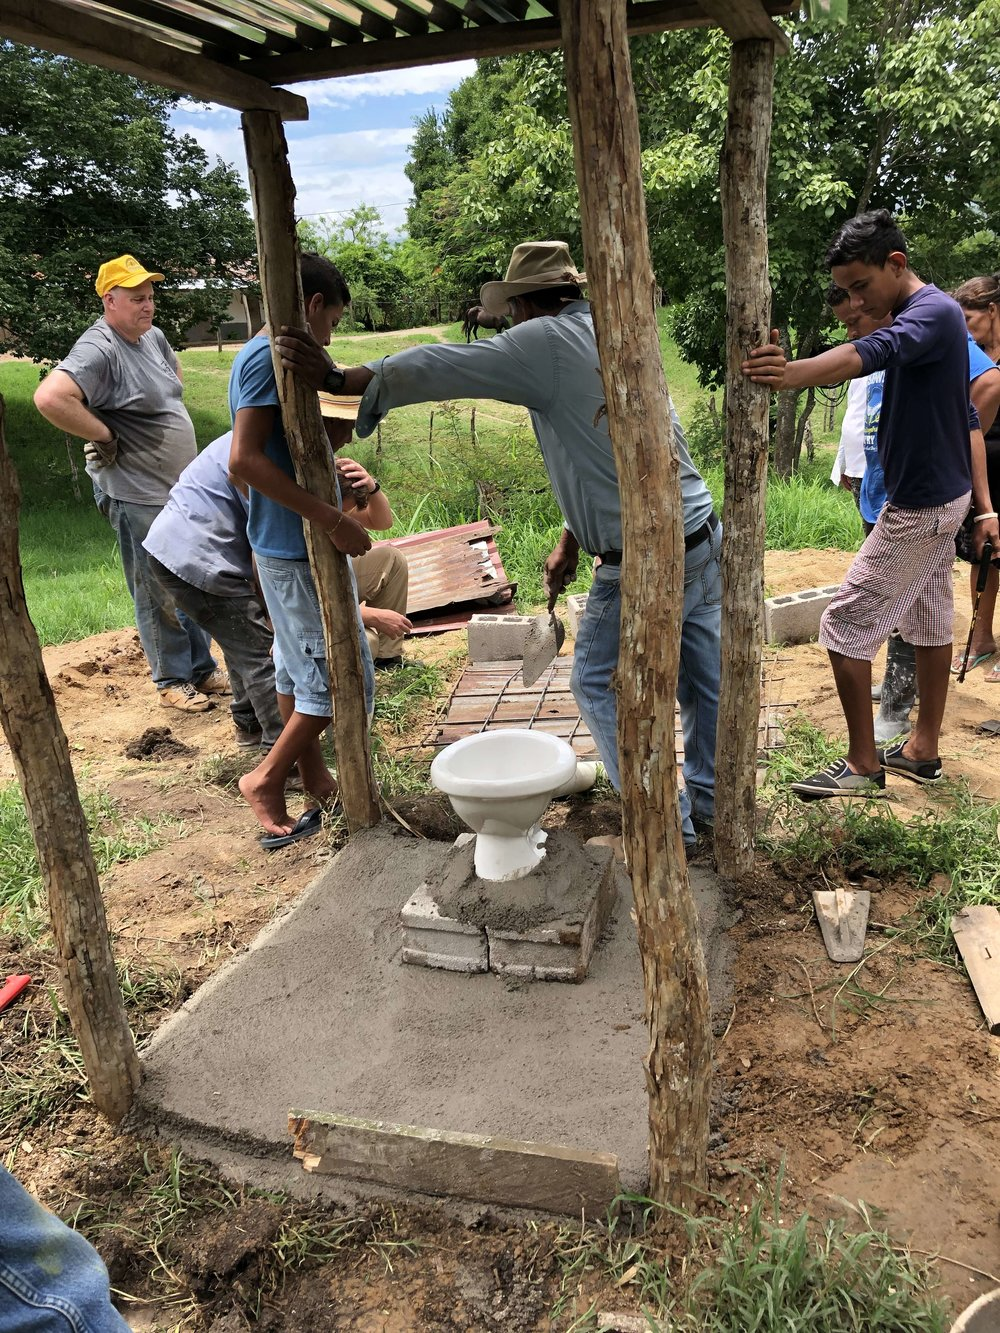 The missions team worked alongside villagers to improve sanitation by constructing cinderblock latrines.